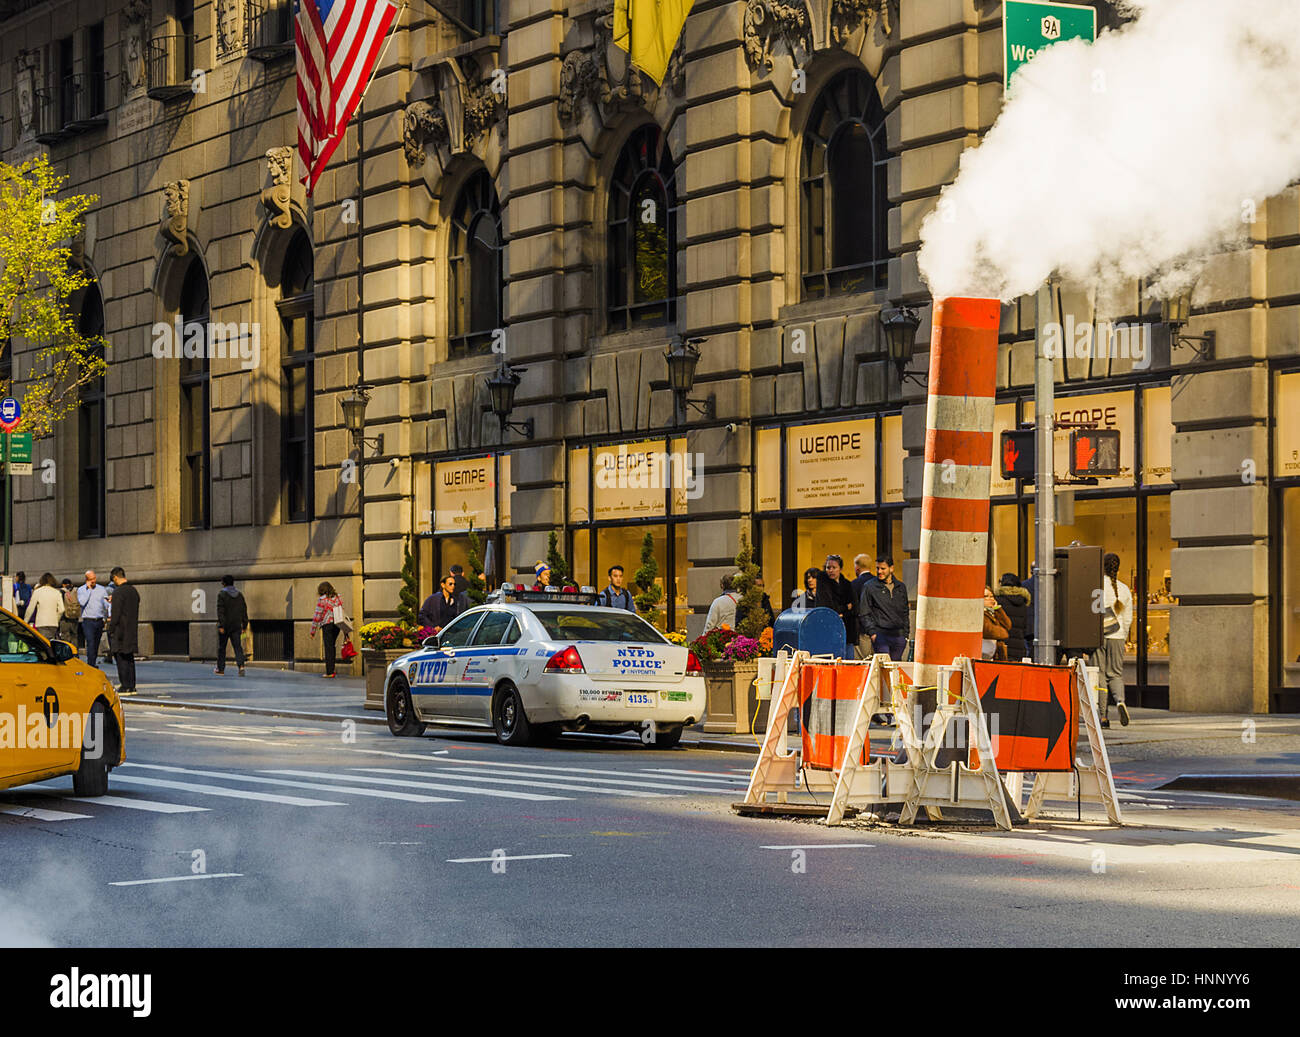 New York, USA, november 2016: Manhattan street scene with steam coming from manhole cover - Stock Image